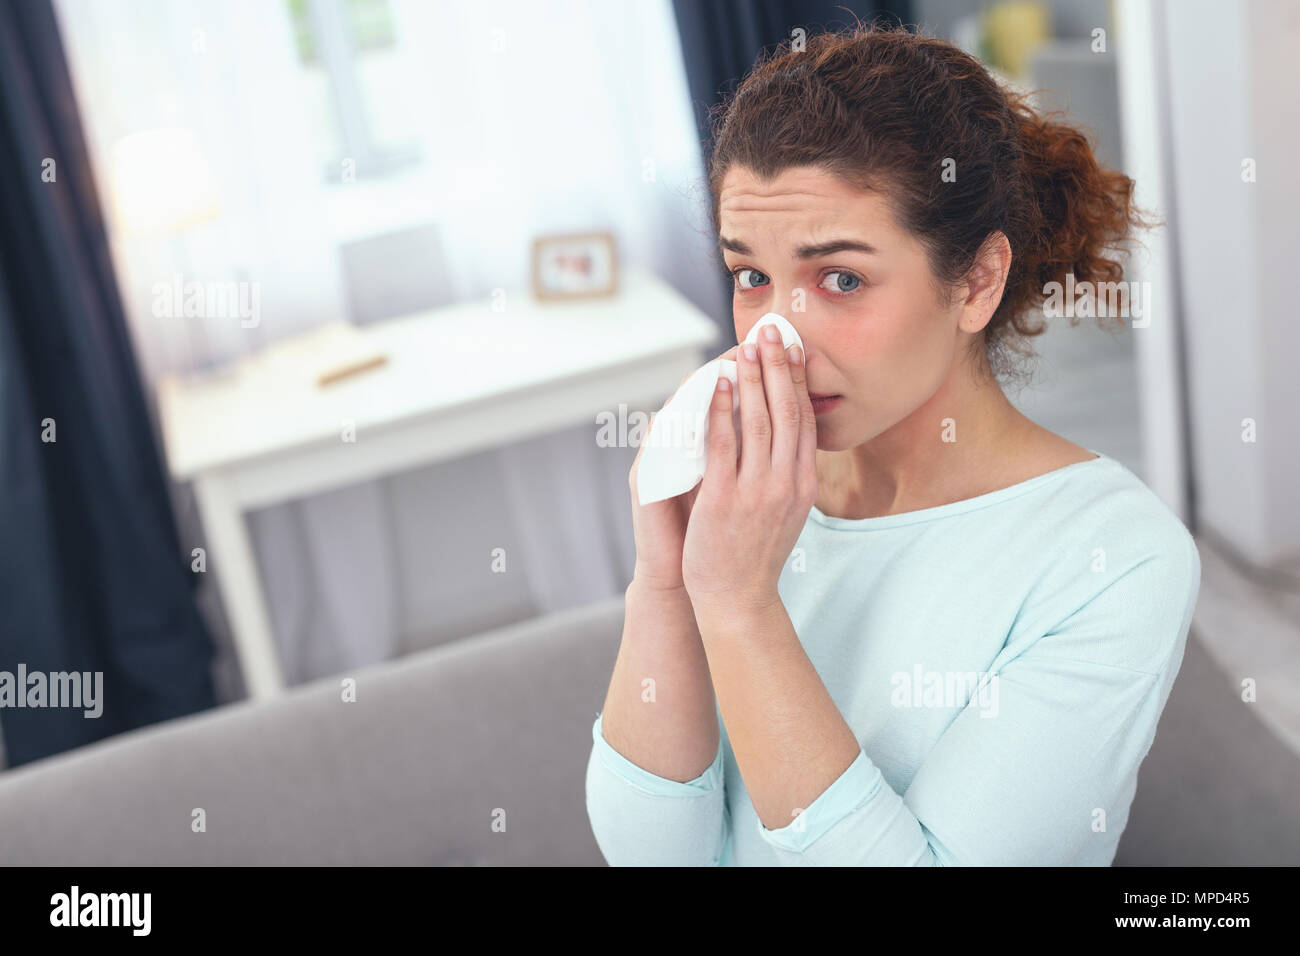 Sick lady suffering from an unknown allergic reaction - Stock Image